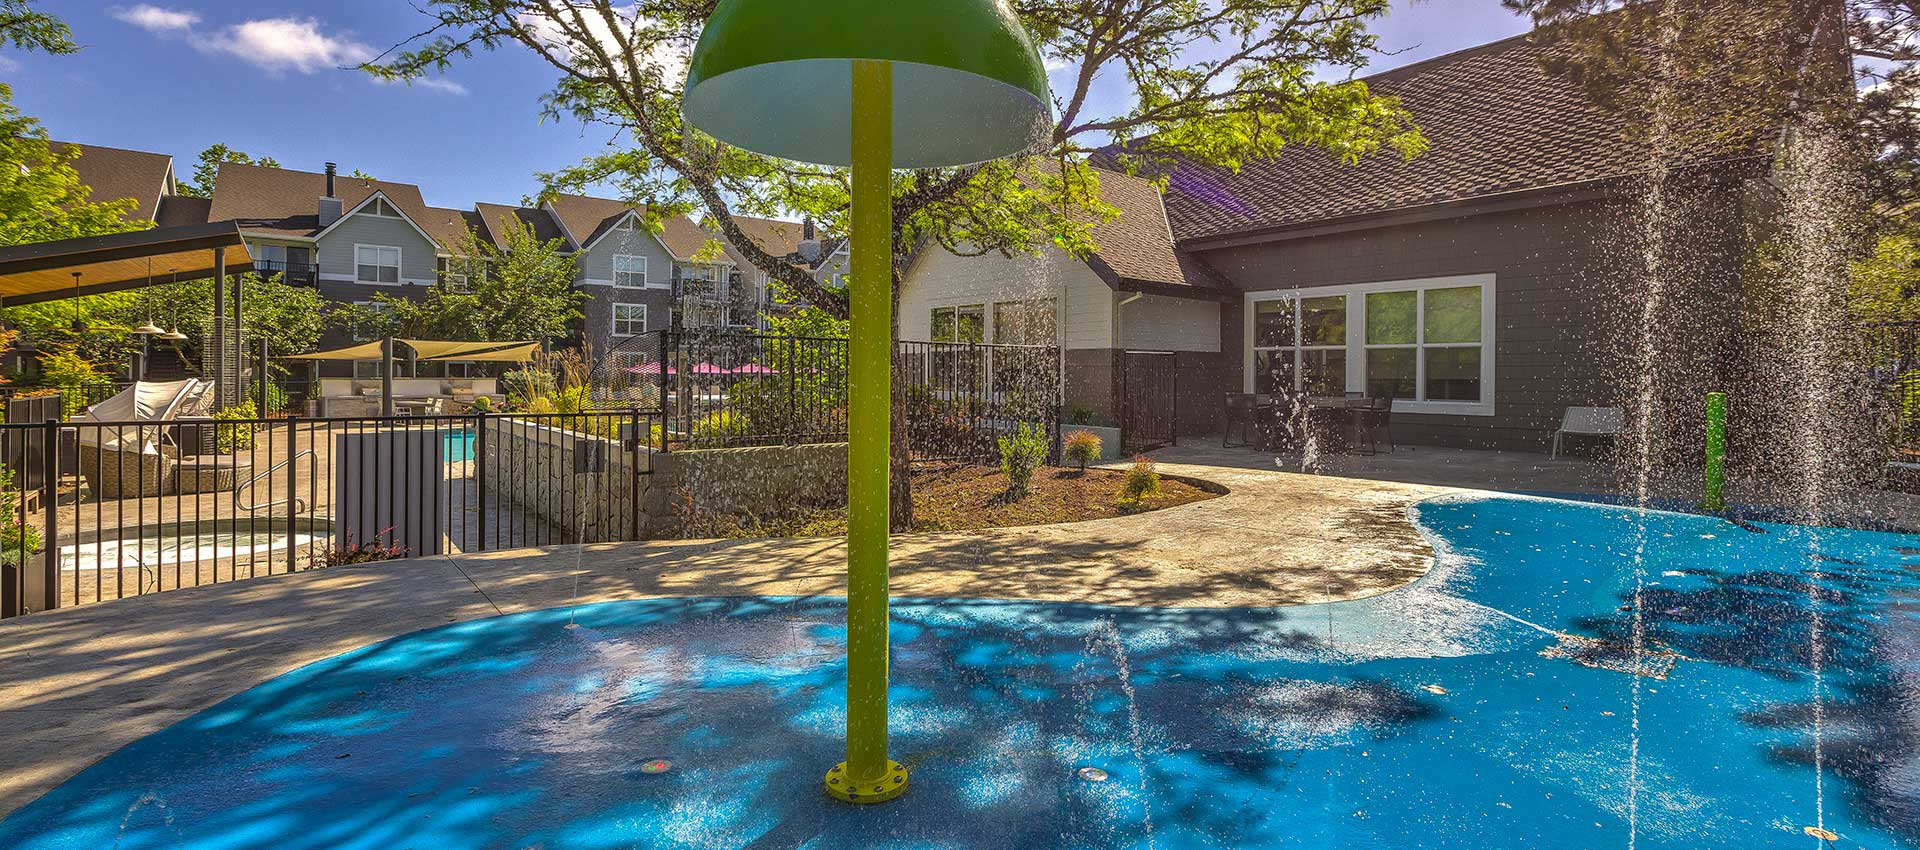 Splash park at Centro Apartment Homes